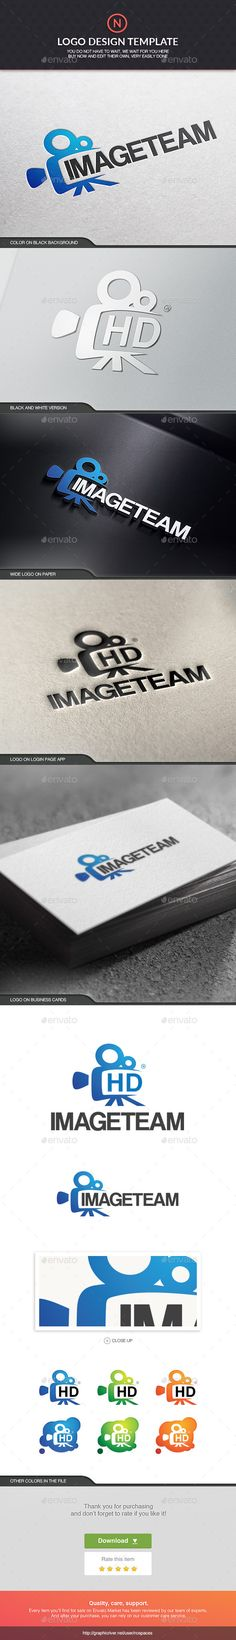 Image Team Logo, an excellent logo template suitable for any business, especially for video companies • Click here to download ! http://graphicriver.net/item/image-team/6210867?s_rank=31&ref=pxcr